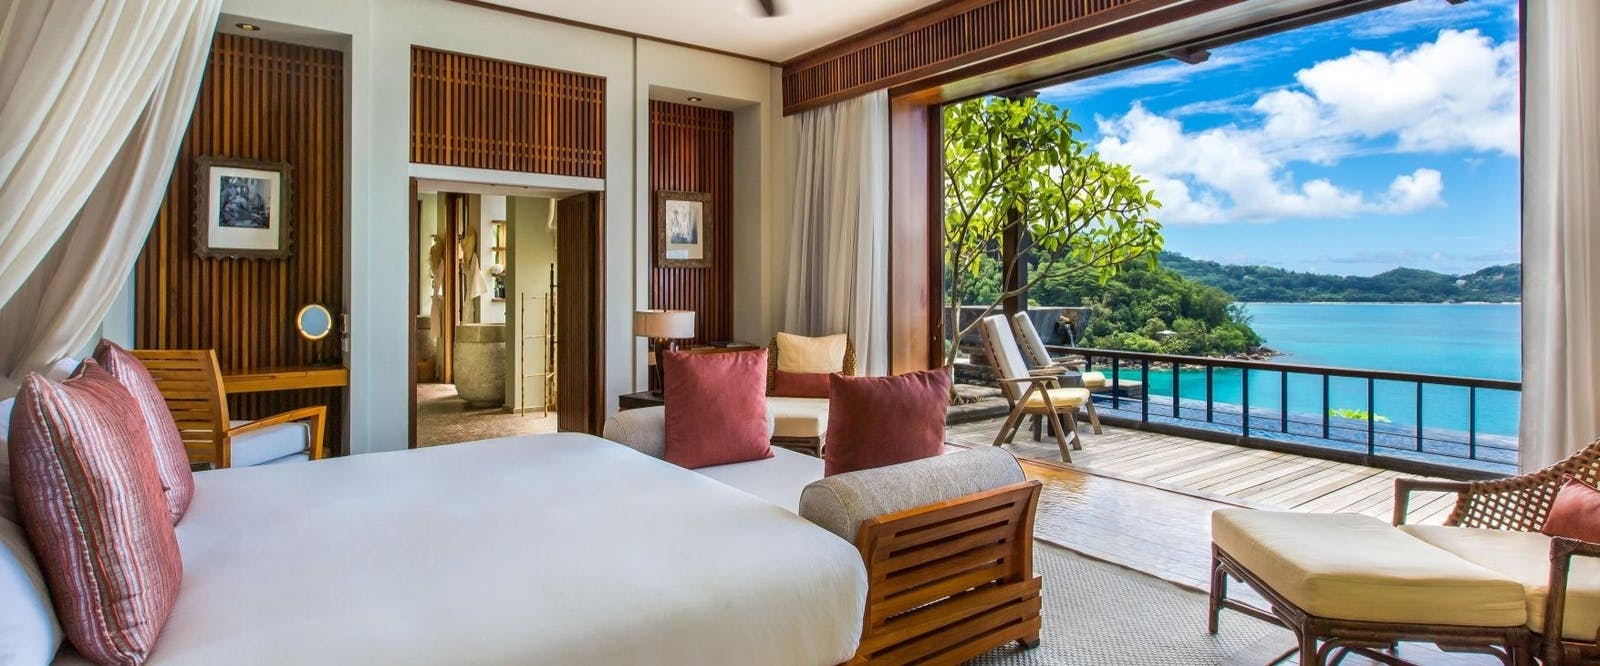 Ocean Panoramic Villa Bedroom at Maia Luxury Resort & Spa, Seychelles